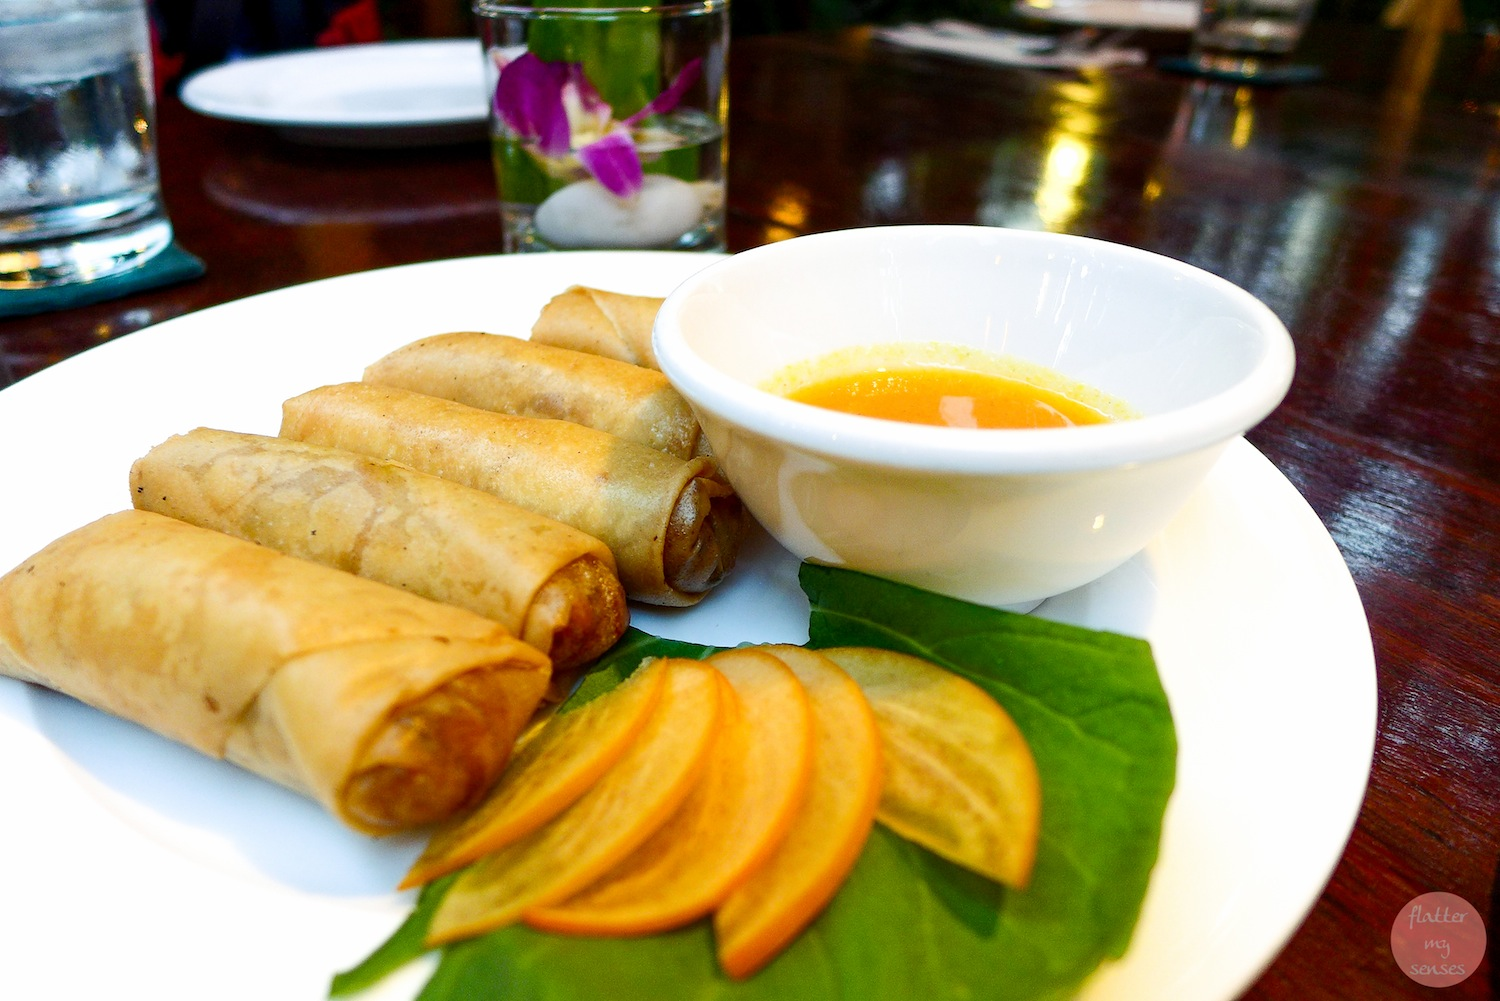 Crispy Duck Spring Rolls with Spiced Persimmon Sauce ($4.75)